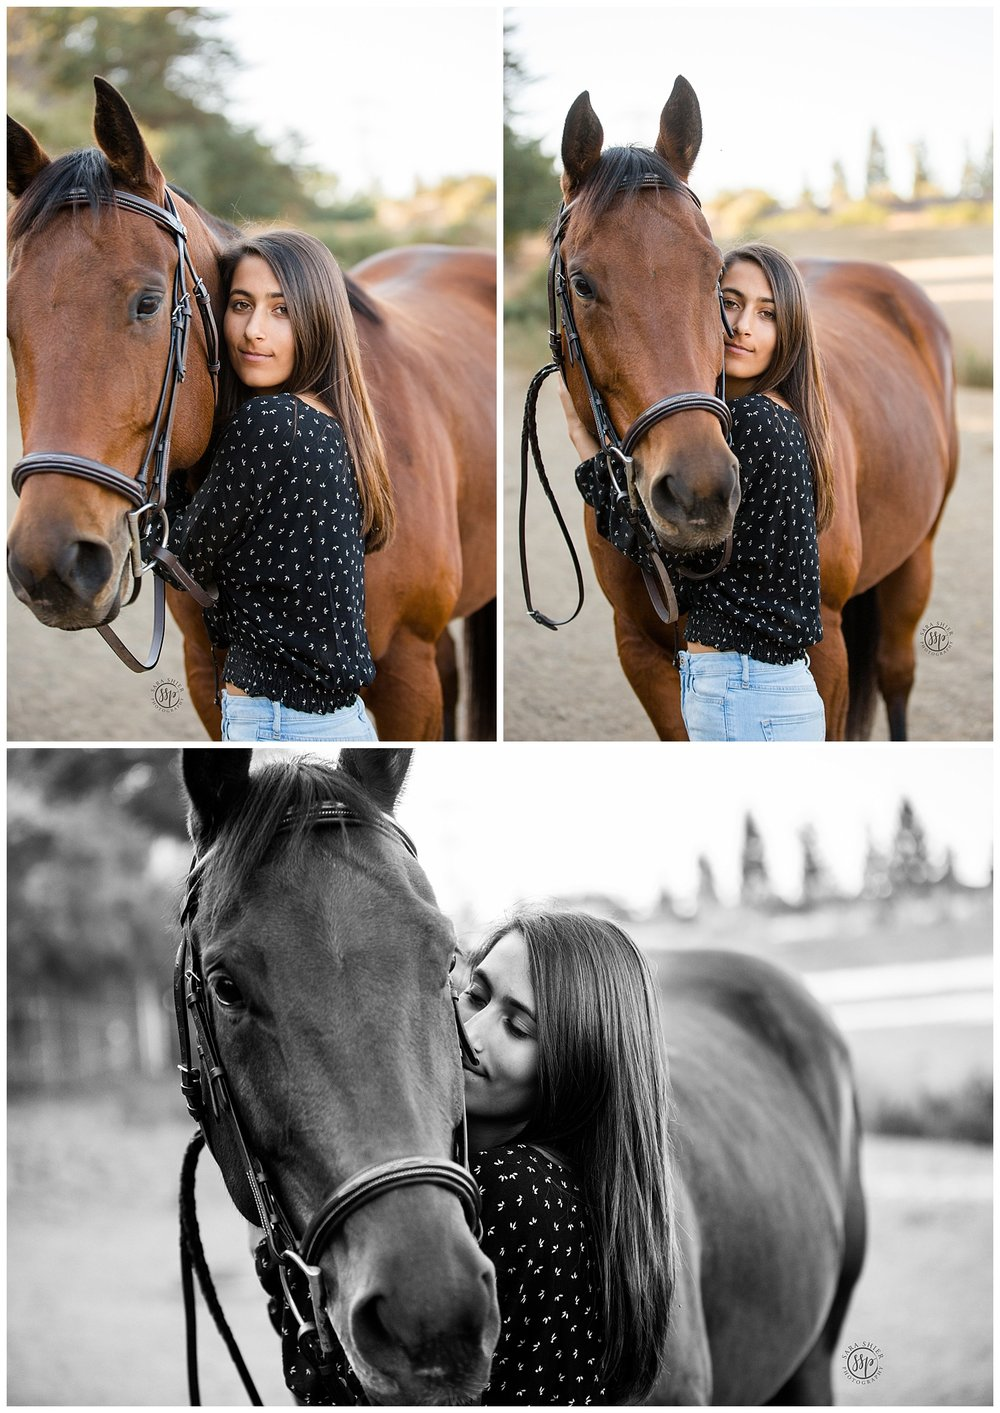 Black Background Horse Rider Equine Photographer Southern California Sara Shier Photography SoCal Equestrian Cowgirl_0042.jpg